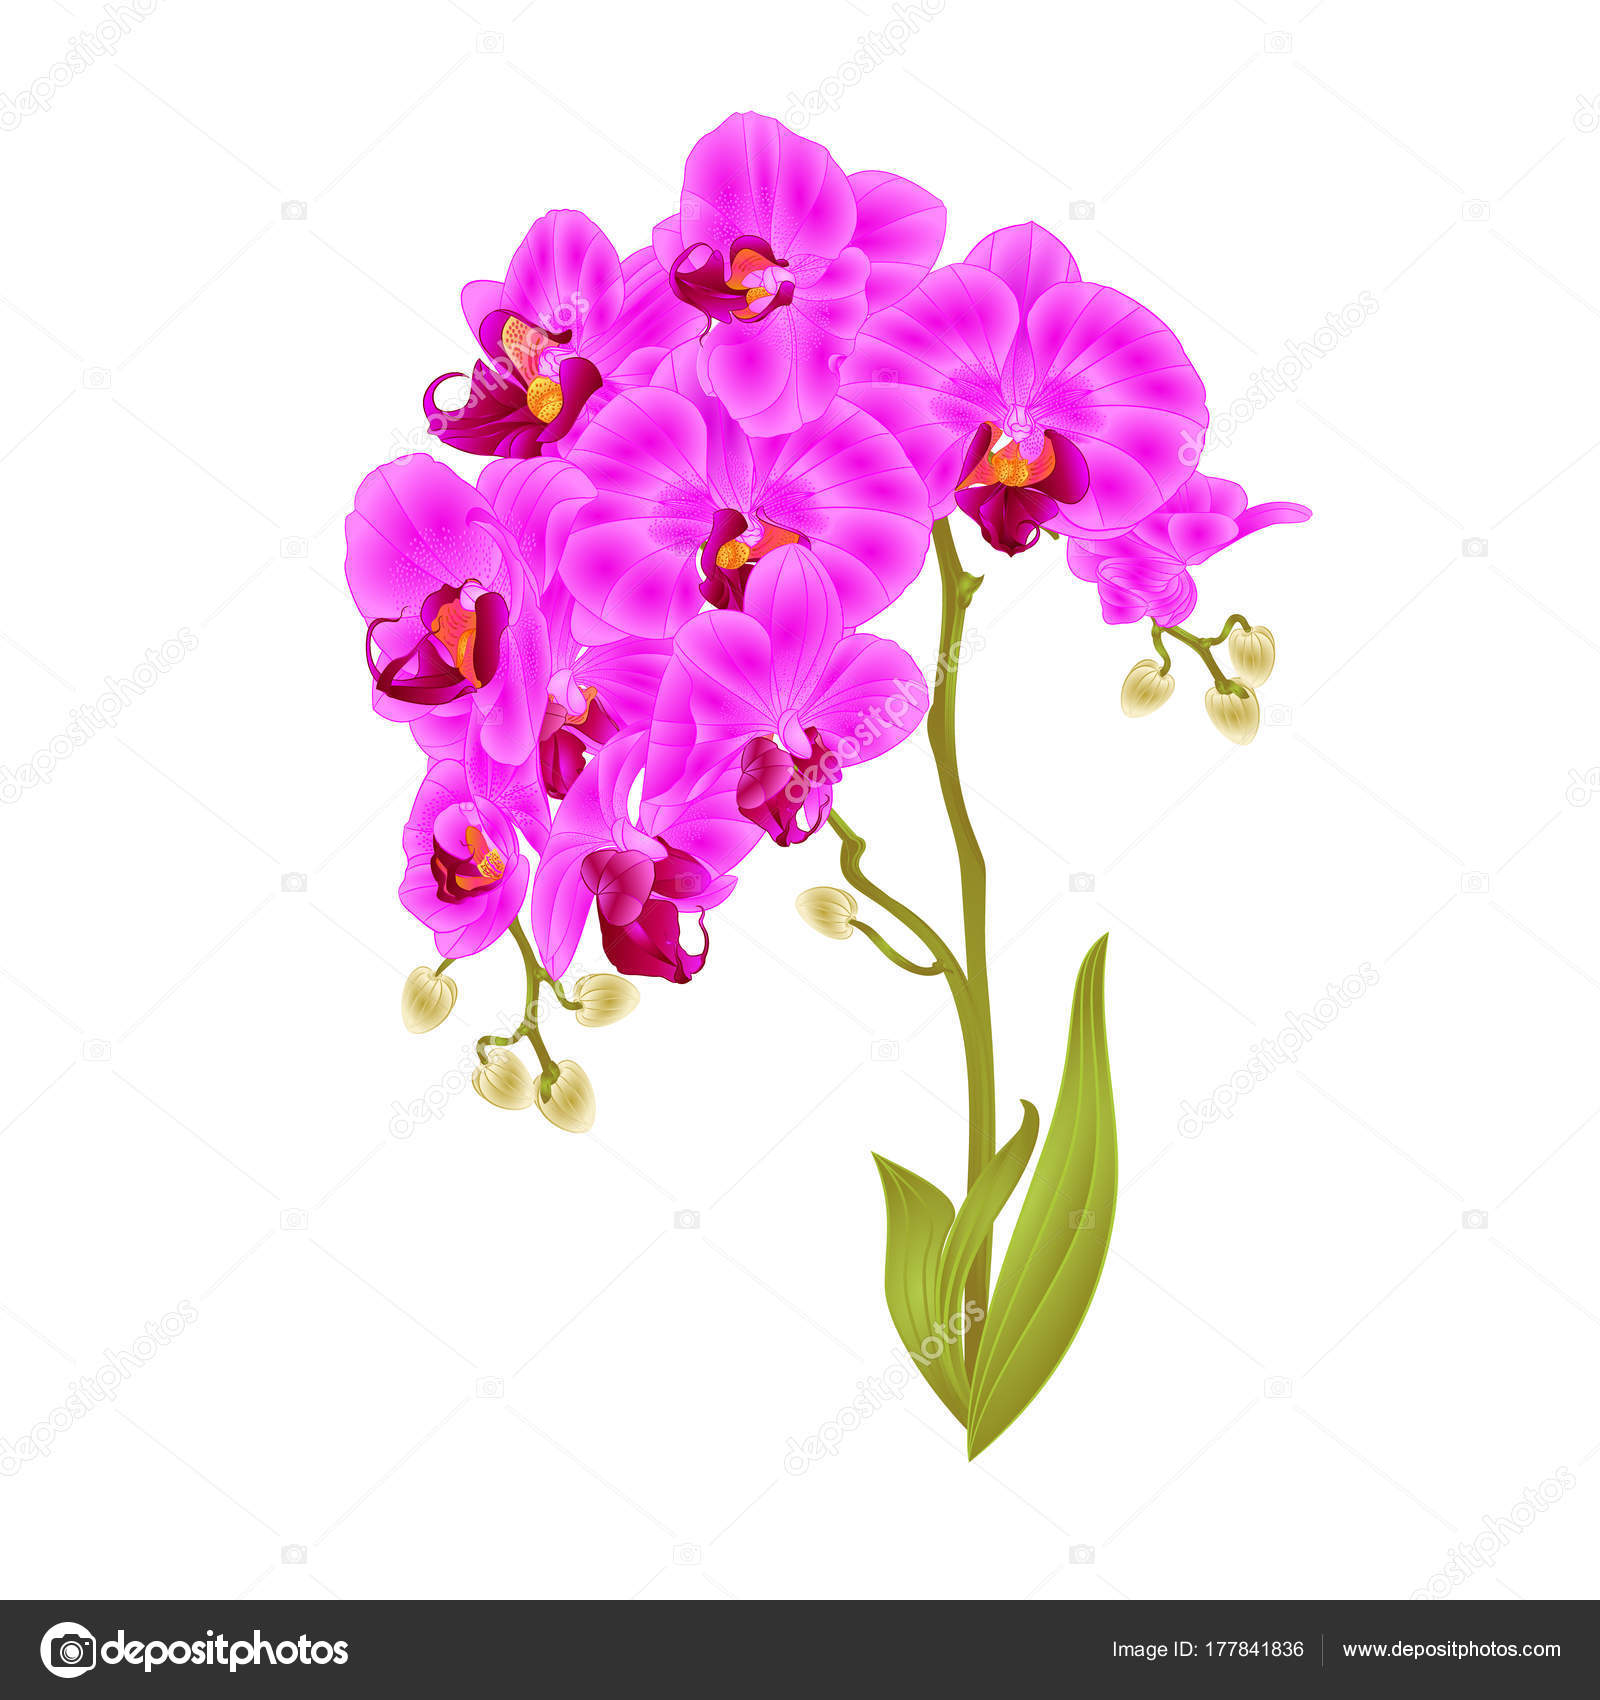 Branches orchid phalaenopsis purple flowers leaves tropical plants branches orchid phalaenopsis purple flowers and leaves tropical plants stem and buds on a white background vintage vector botanical illustration for design mightylinksfo